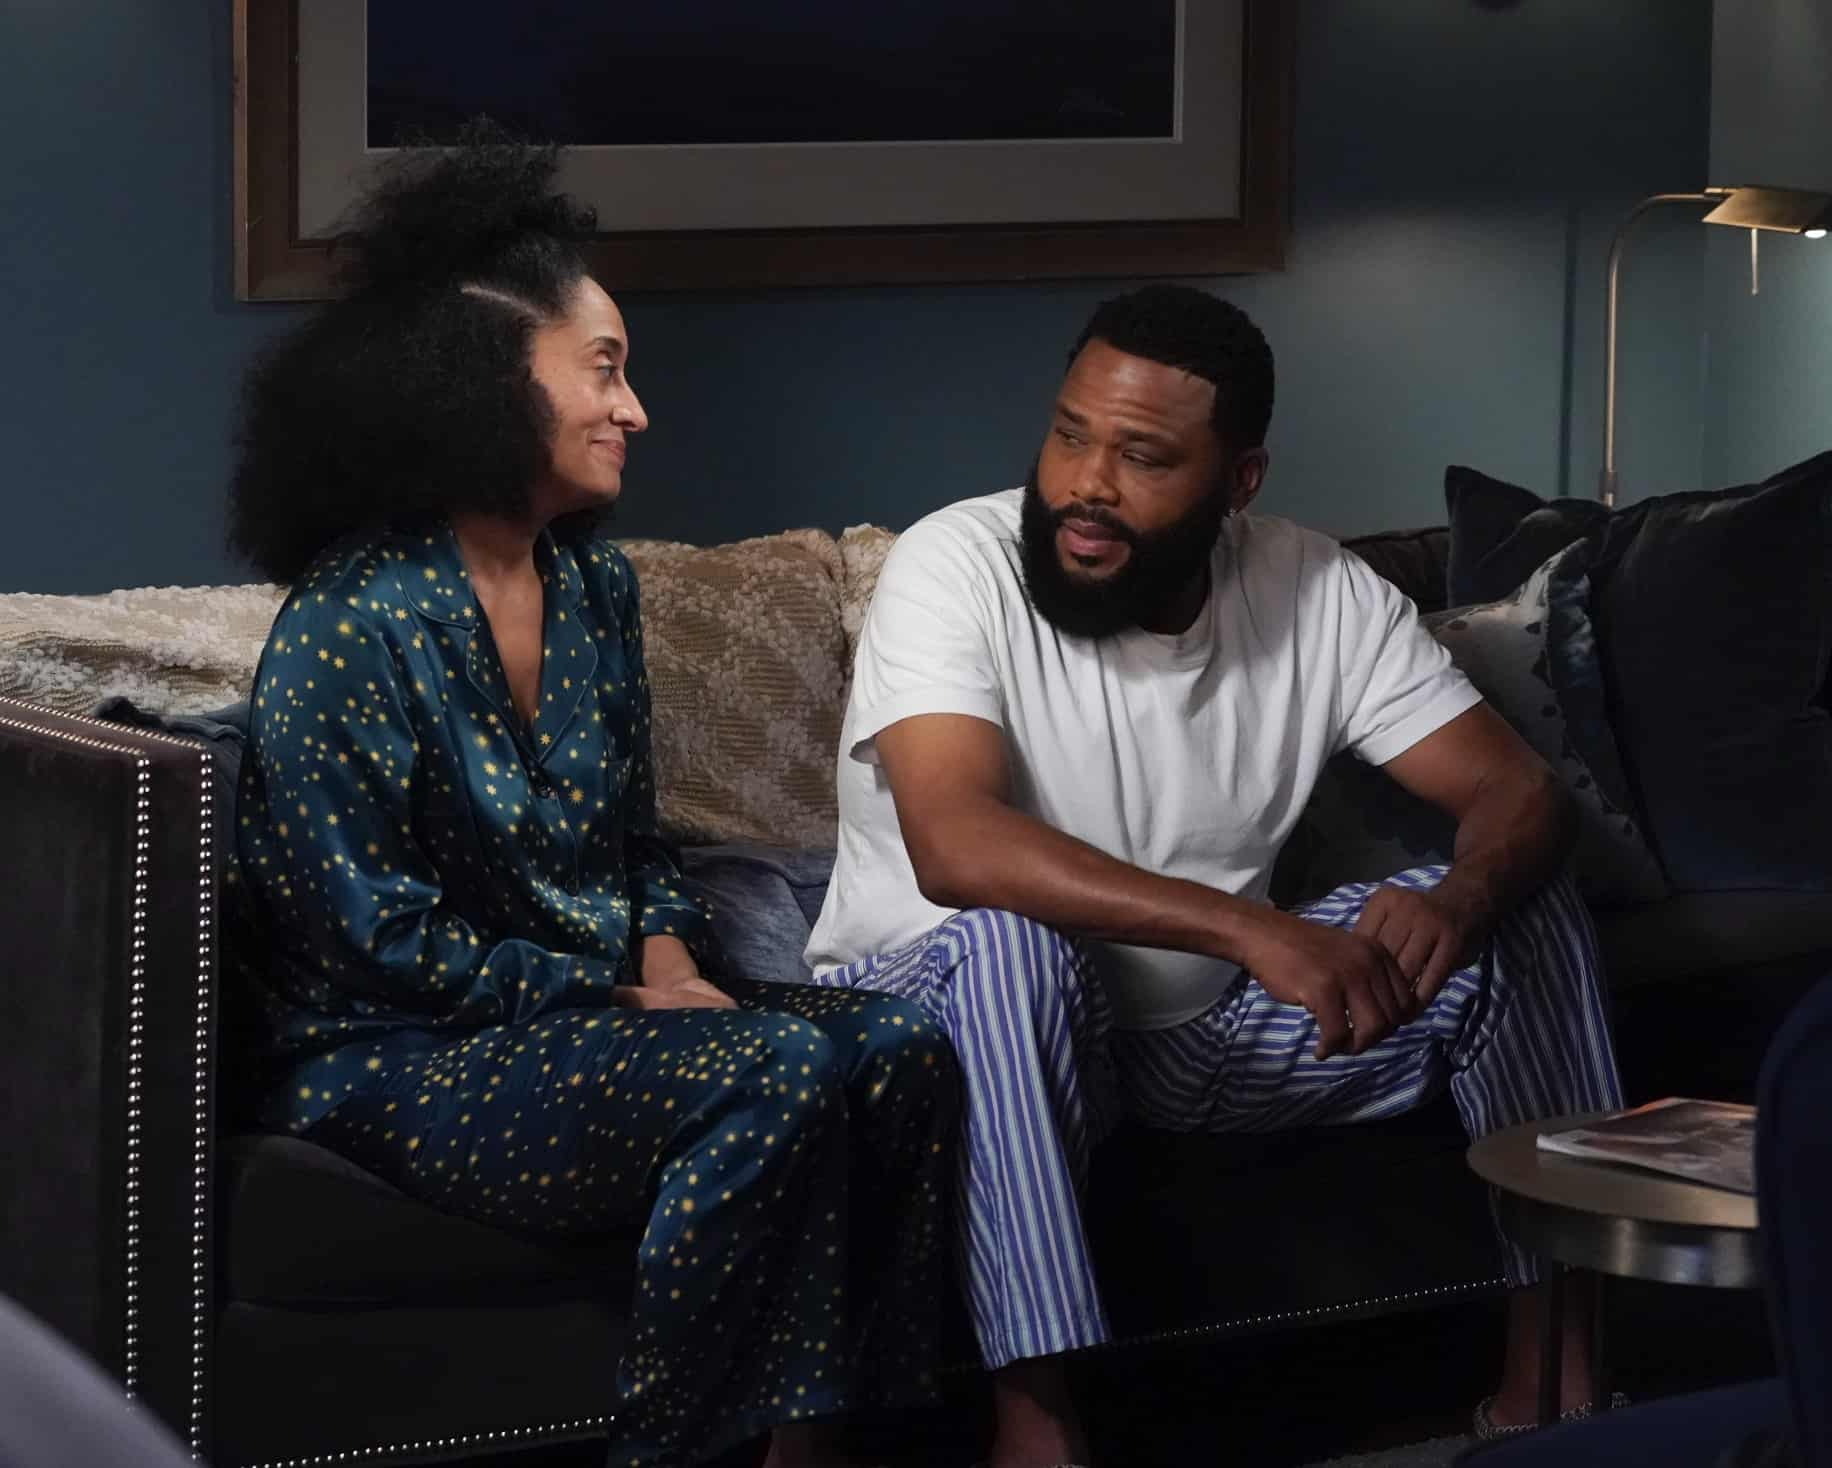 """BLACK-ISH Season 7 Episode 21 - """"Urban Legend"""" – Dre feels pigeonholed to the urban marketing team at Stevens & Lido and realizes he needs to make some big career changes. Boyz II Men stop by the office to help out the team with a SoFi campaign pitch.  Meanwhile, Junior has to deal with the twins who are overstaying their welcome at his and Olivia's apartment on the season finale of """"black-ish,"""" TUESDAY, MAY 18 (9:00-9:30 p.m. EDT), on ABC. (ABC/Richard Cartwright) TRACEE ELLIS ROSS, ANTHONY ANDERSON"""